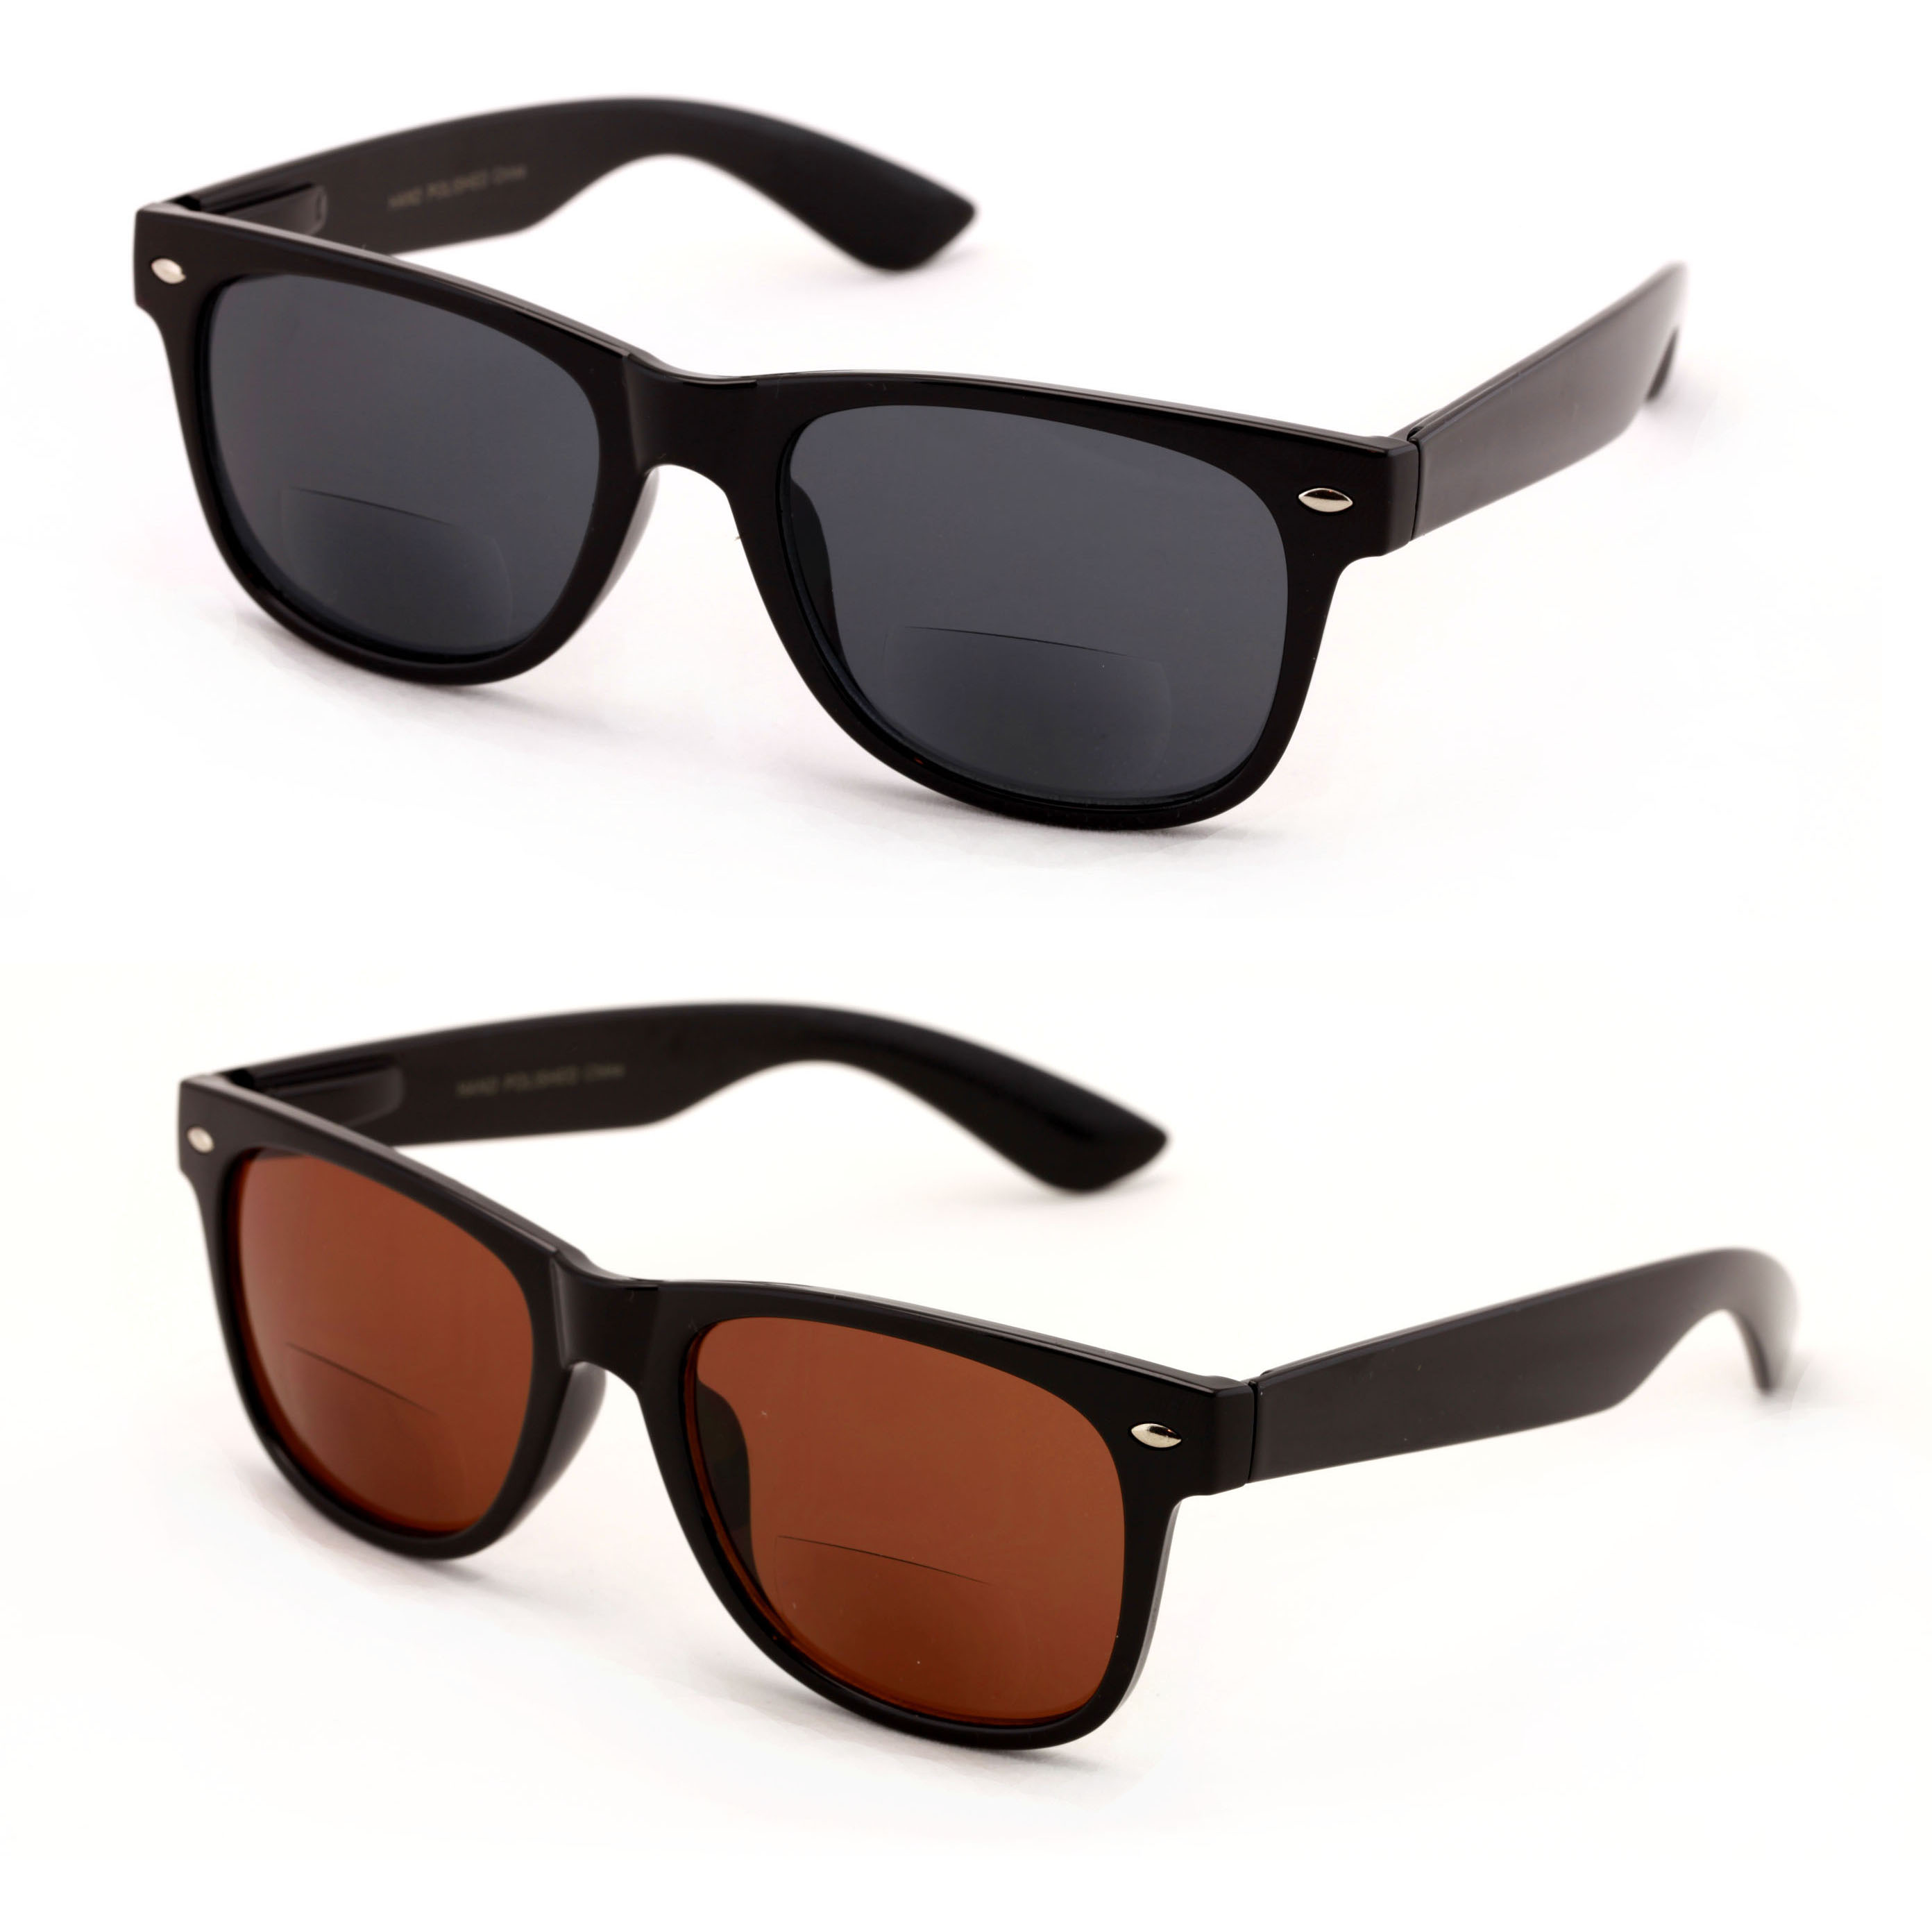 V.W.E. 2 Pairs Classic Bifocal Outdoor Reading Sunglasses - Comfortable Stylish Simple Readers Rx Magnification